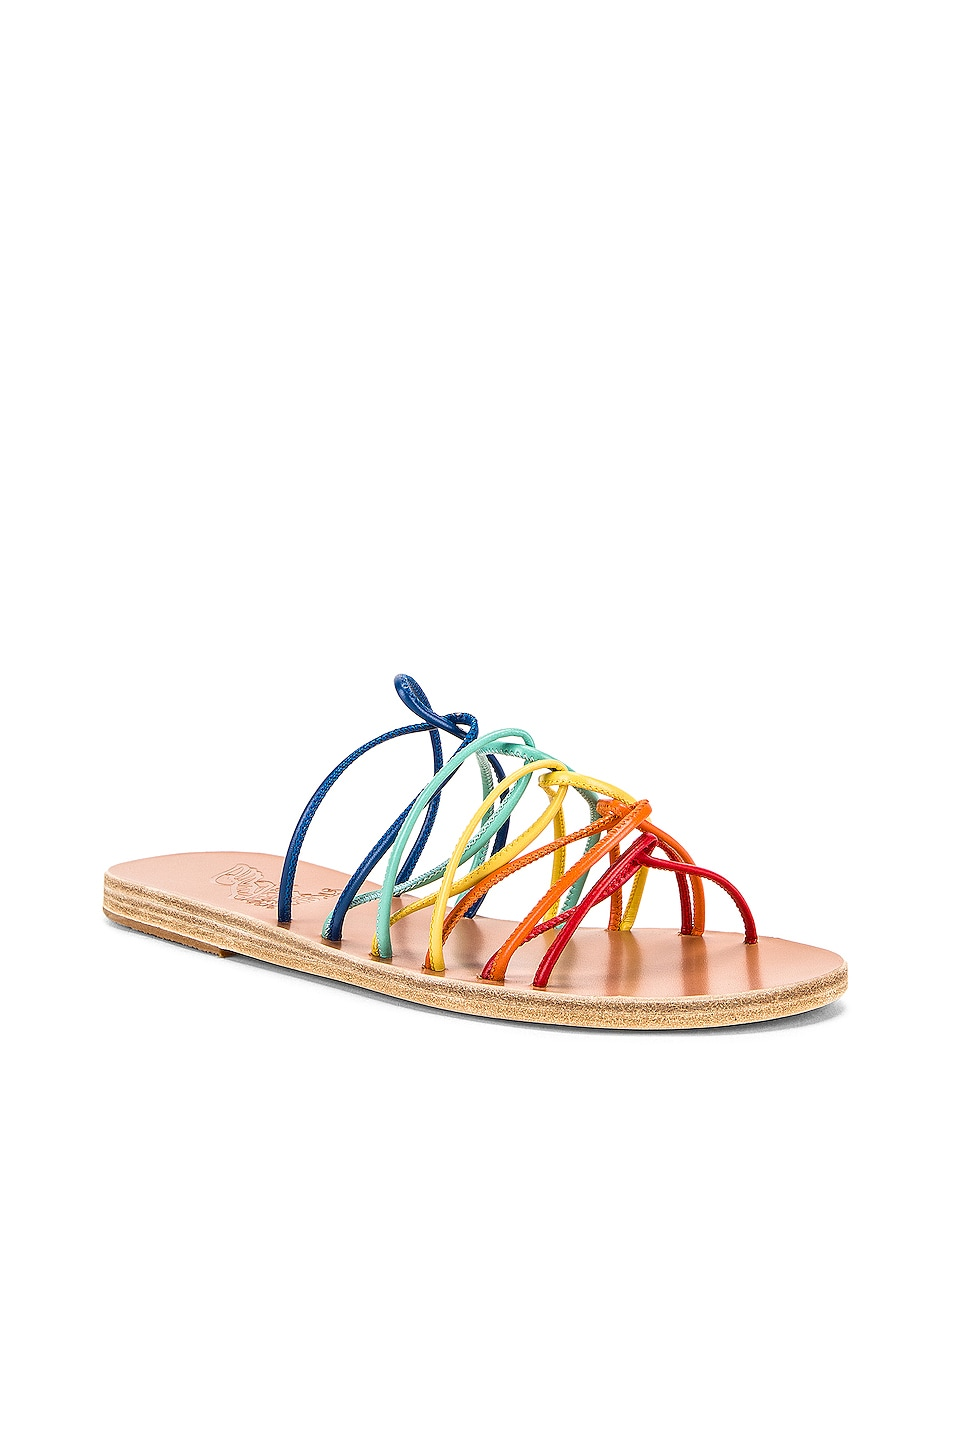 Image 2 of Ancient Greek Sandals Rodopi Sandals in Multi Bright